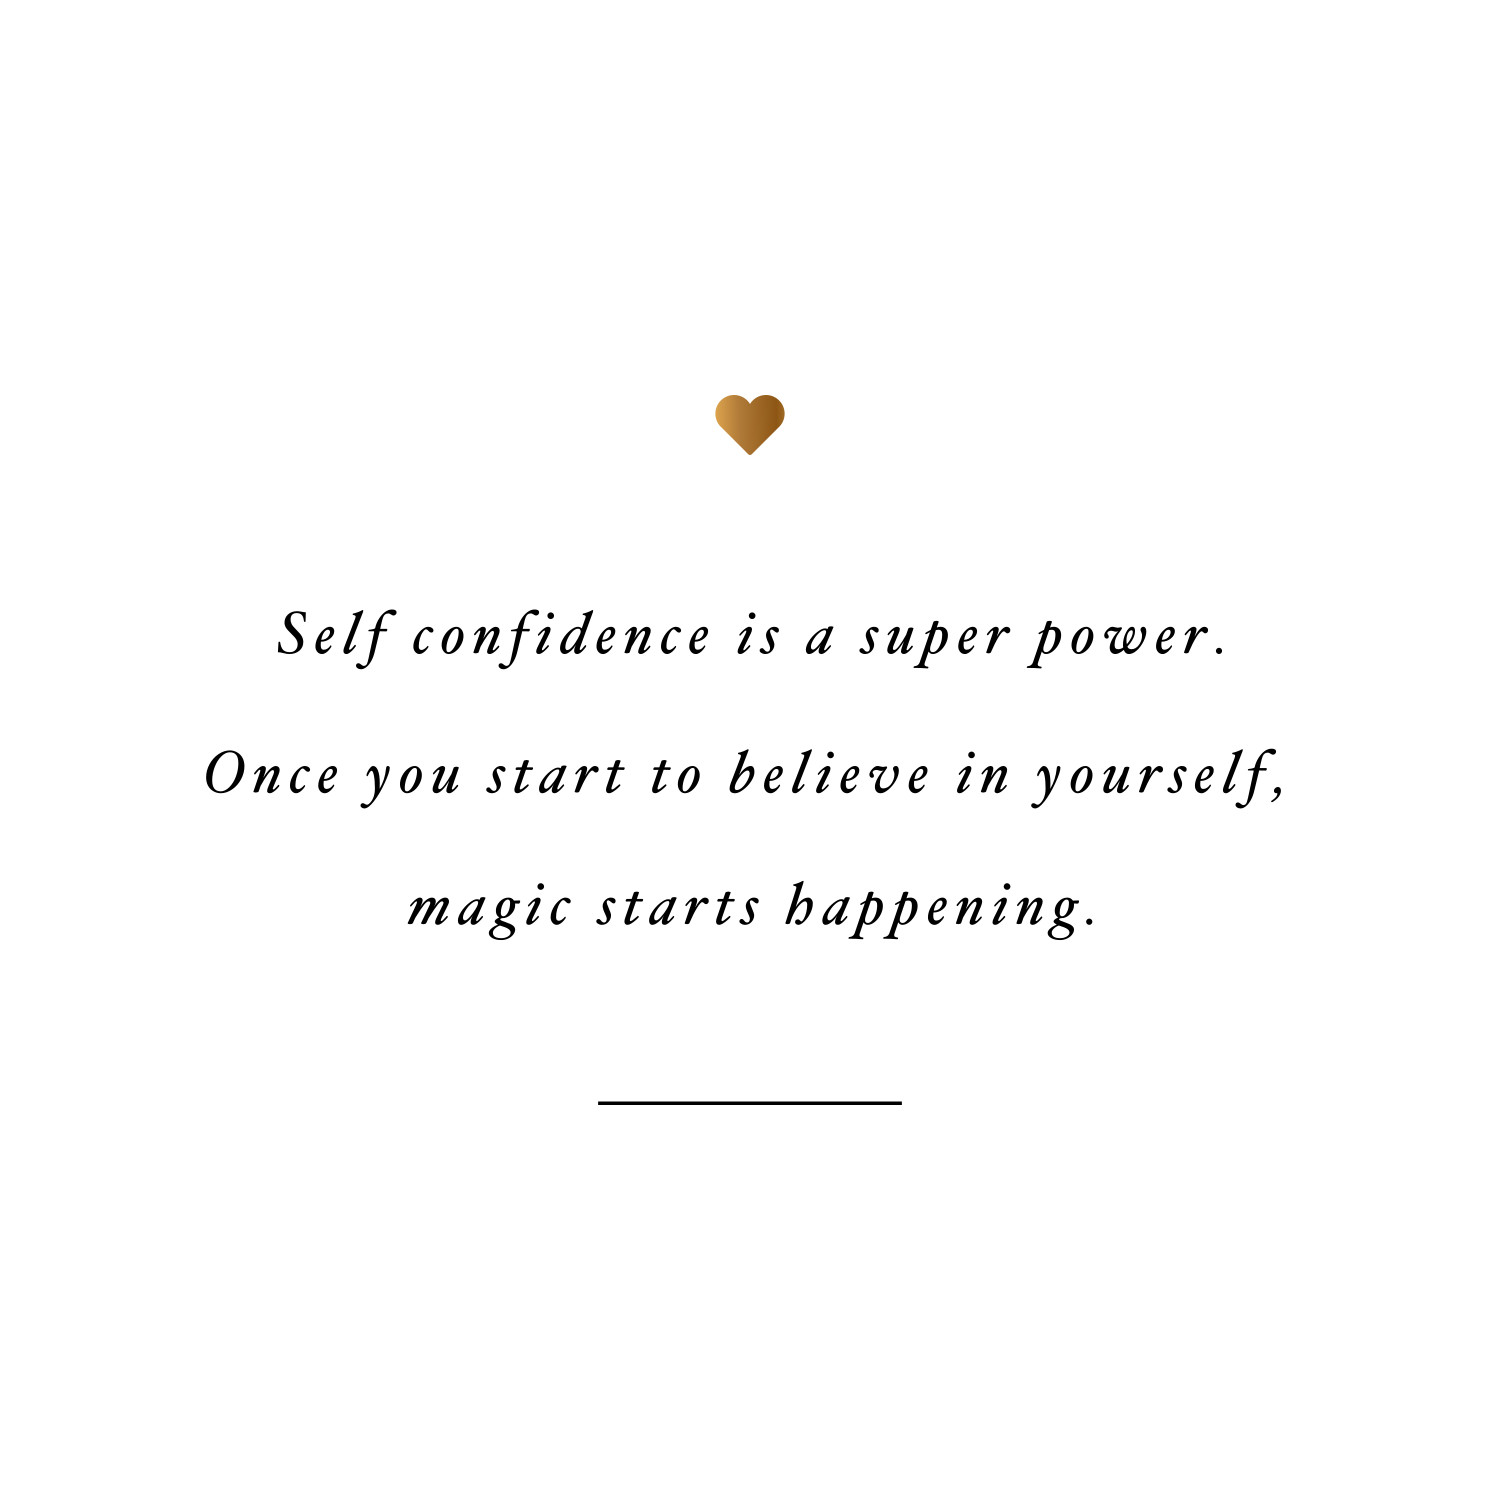 Self confidence is a super power! Browse our collection of inspirational health and fitness quotes and get instant exercise and training motivation. Transform positive thoughts into positive actions and get fit, healthy and happy! https://www.spotebi.com/workout-motivation/self-confidence-is-a-super-power-exercise-and-training-motivation/